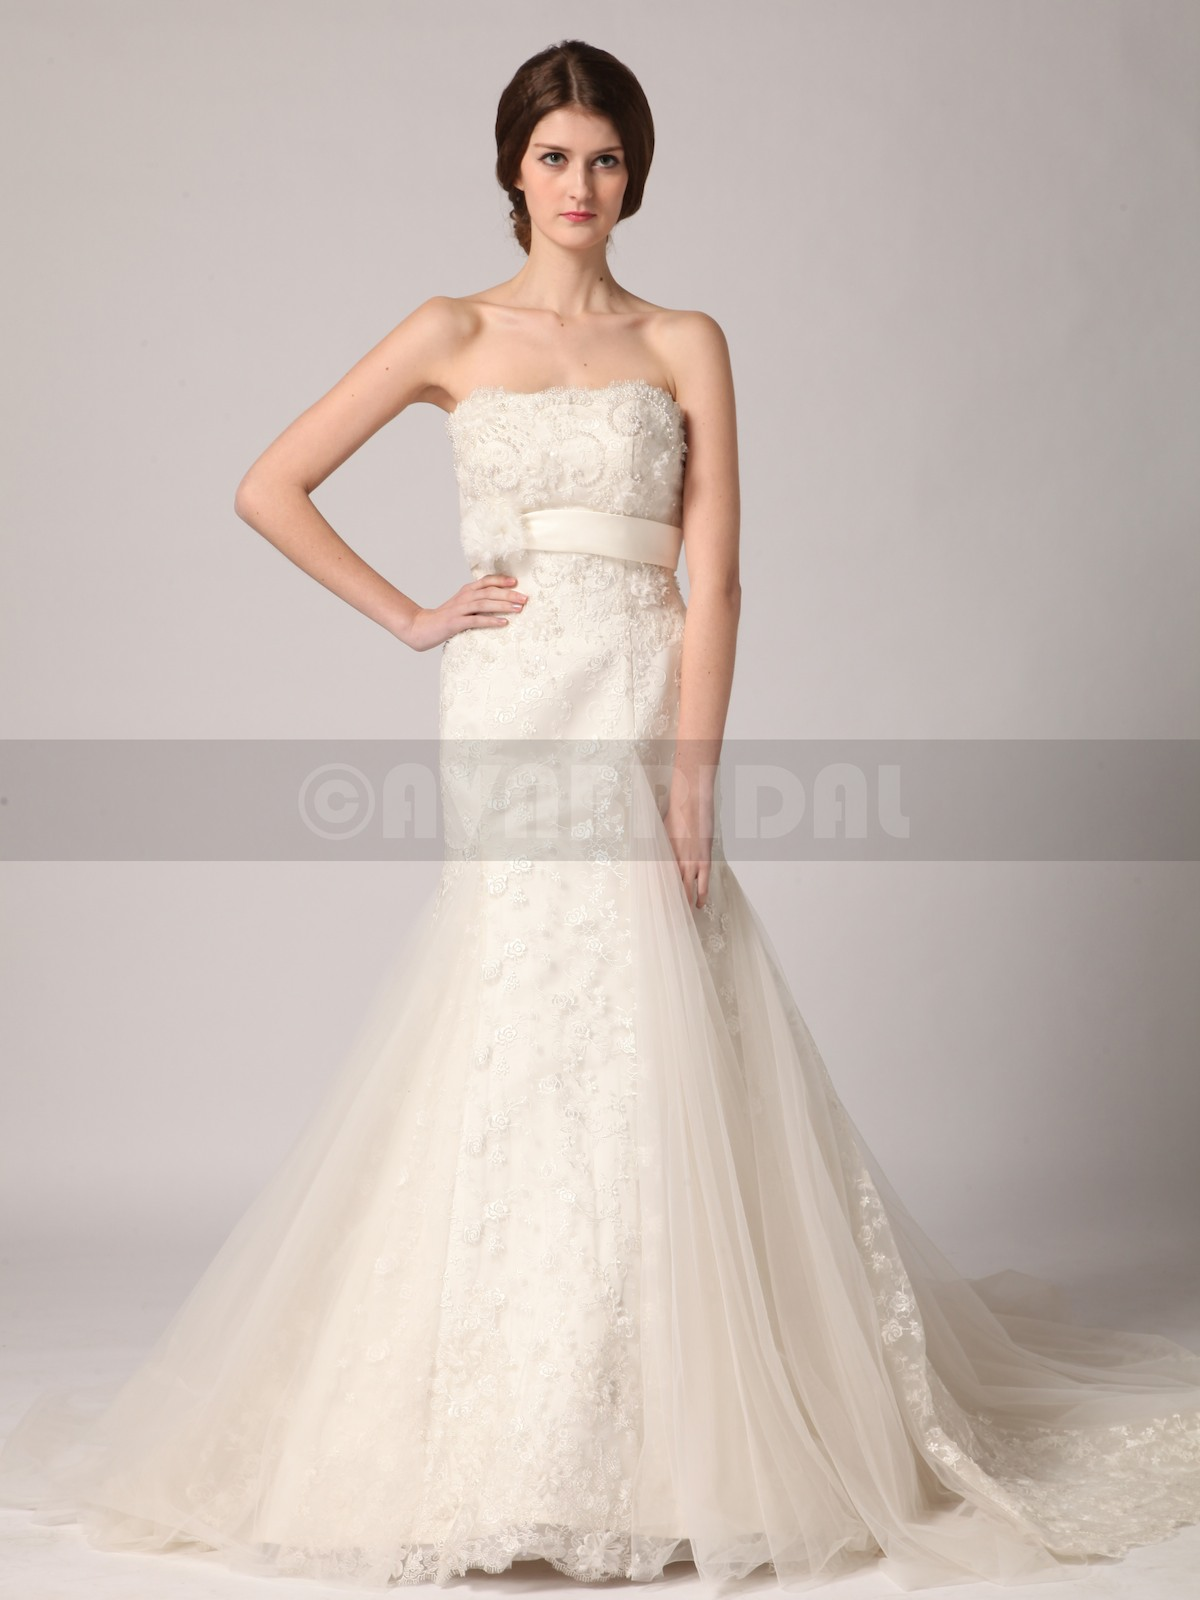 Elegant Wedding Dress - Janene - Front